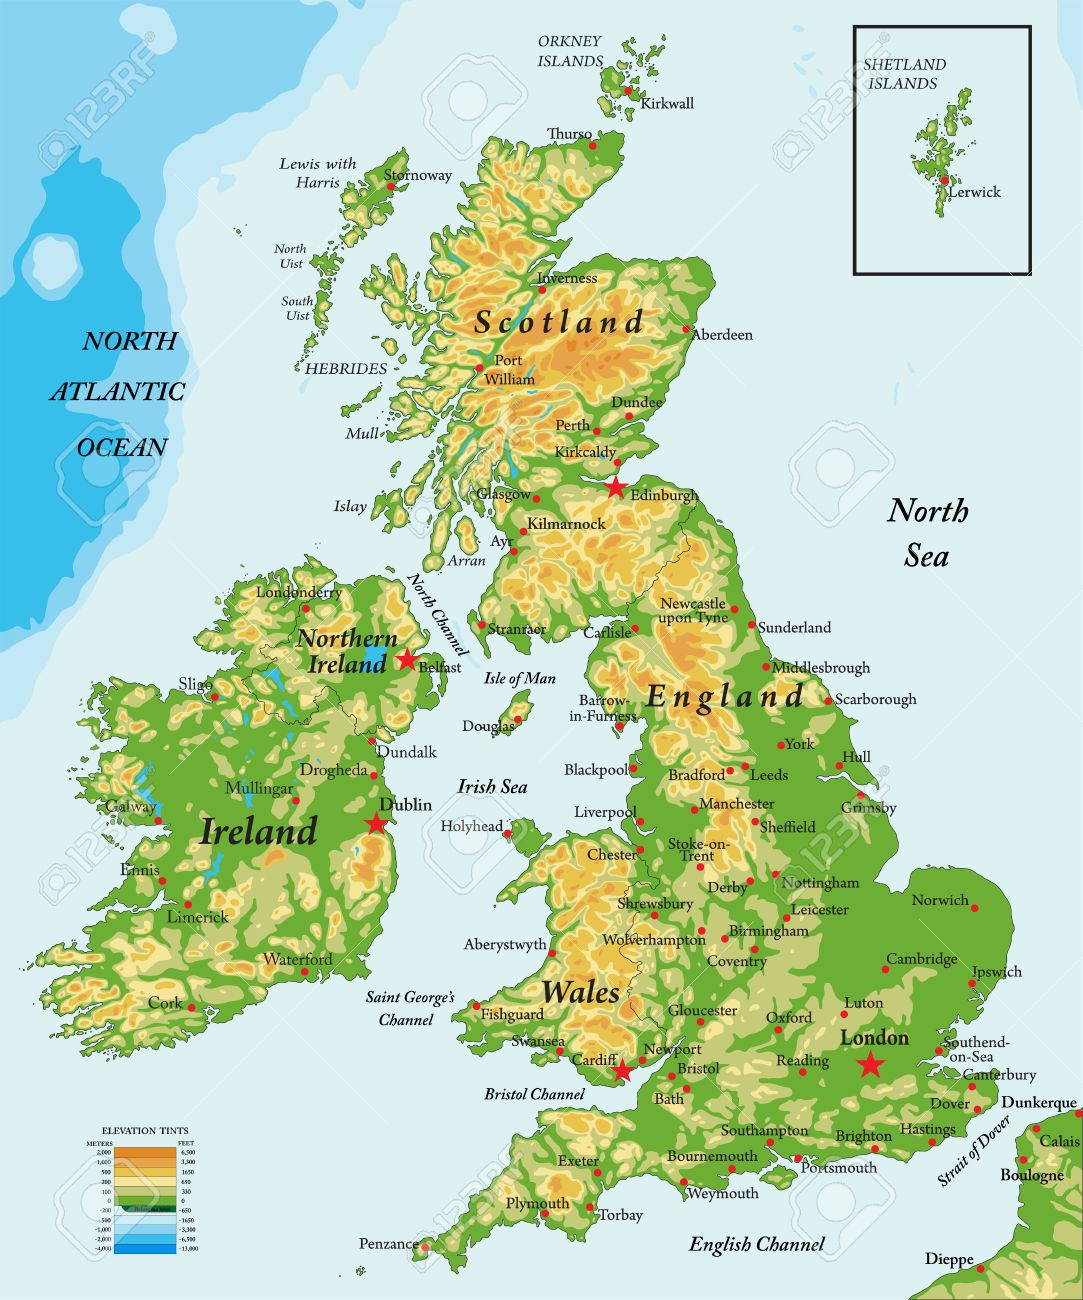 Map Of Uk 2100.They Said 2000 Was The End Of The World Then 2012 Was The End Of